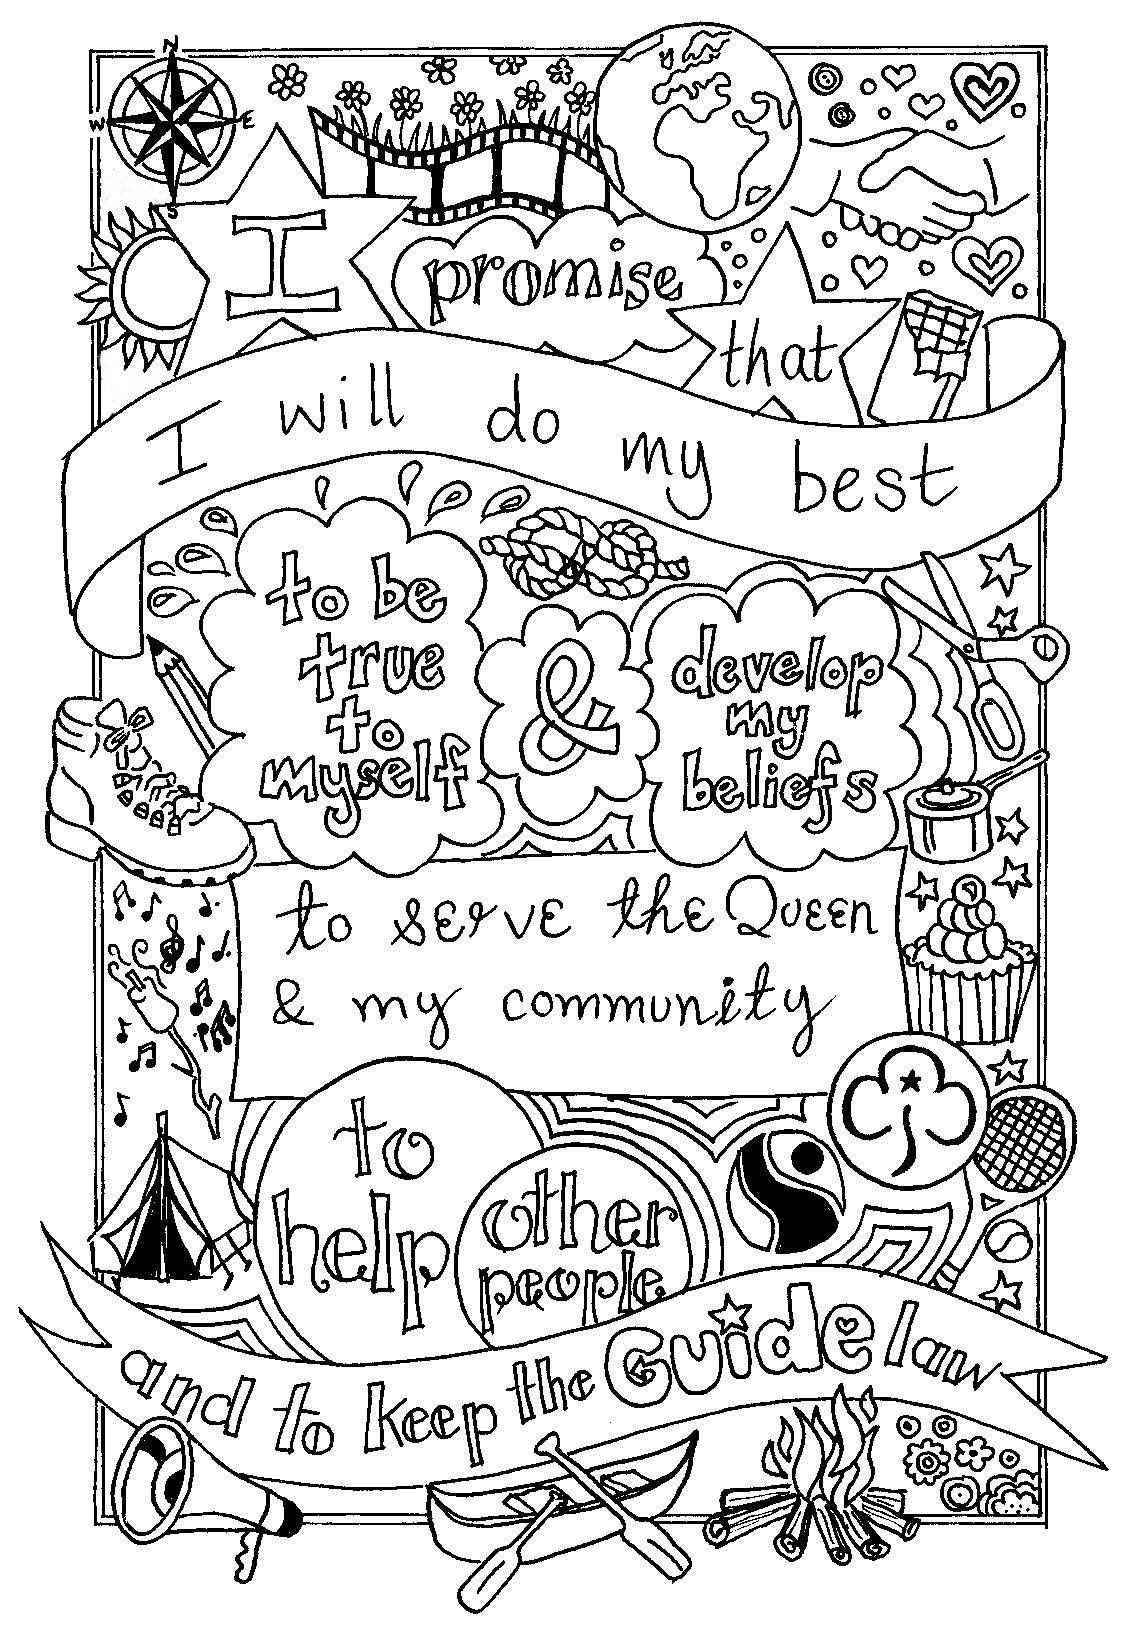 brownie coloring pages - uk guide promise colouring sheet created by emyb emy